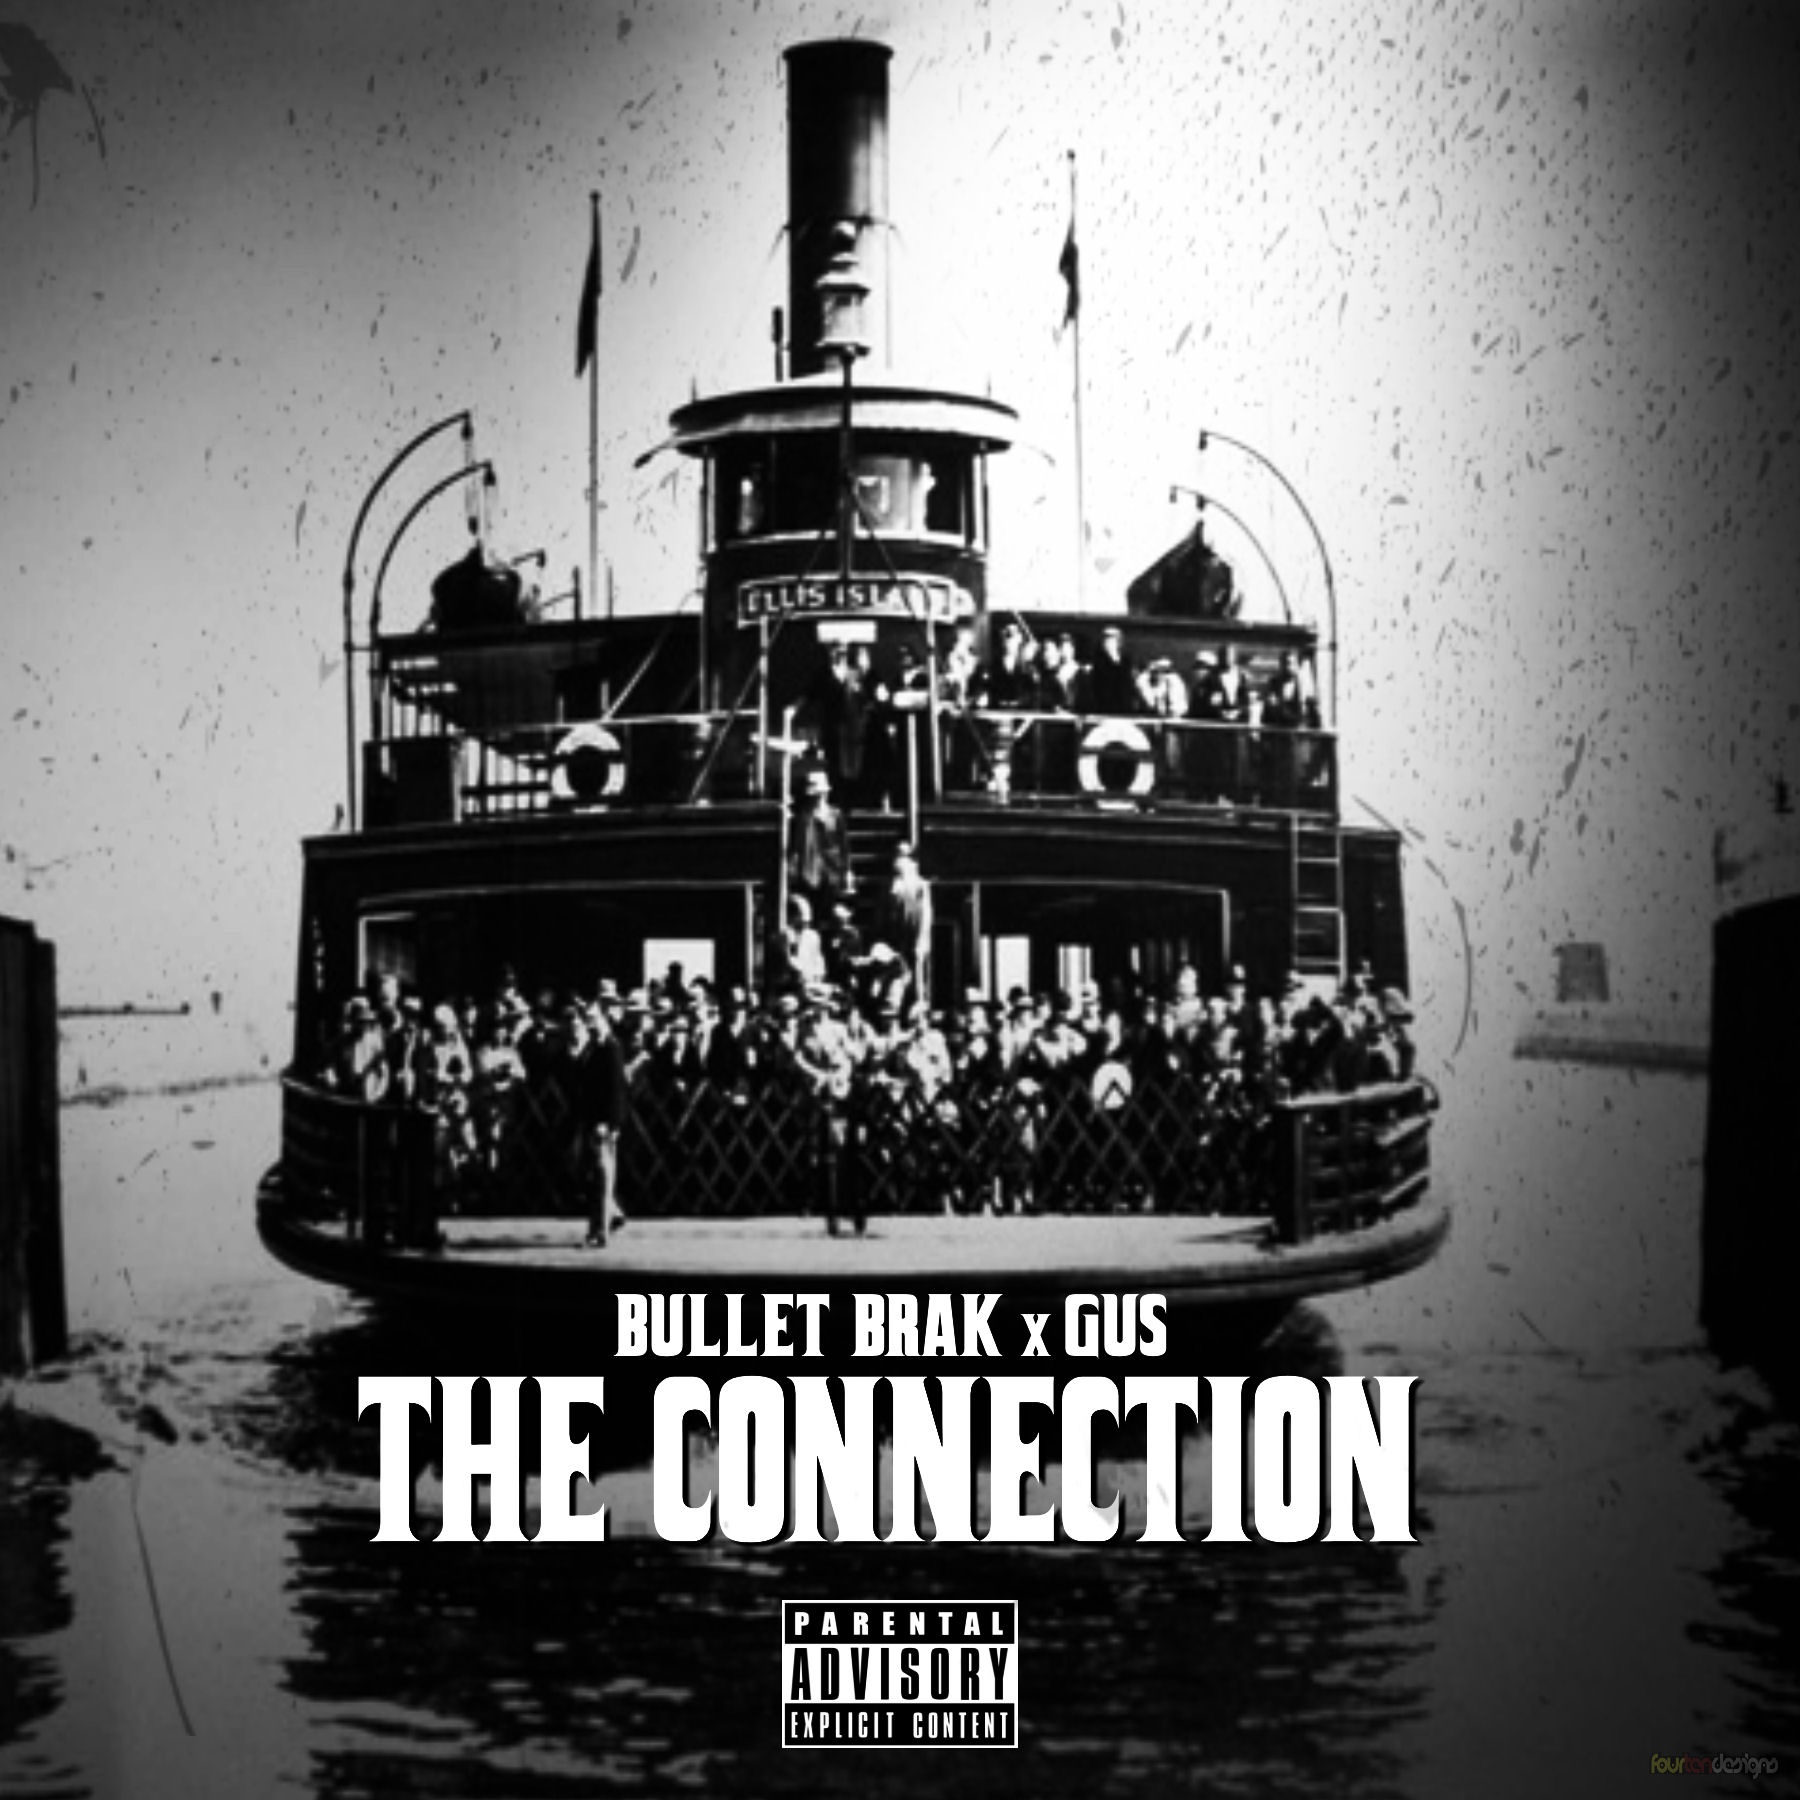 The Connection Official Artwork